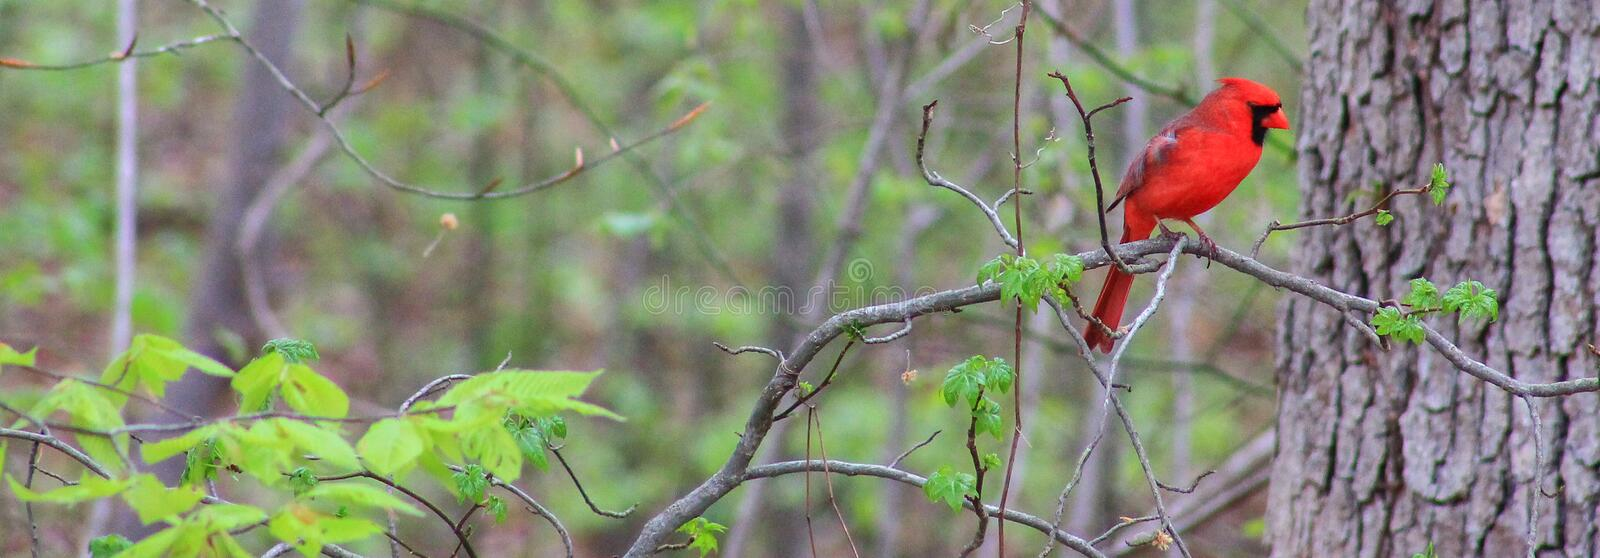 Cardinal in the Woods. Male Cardinal on a tree branch in the woods stock photo